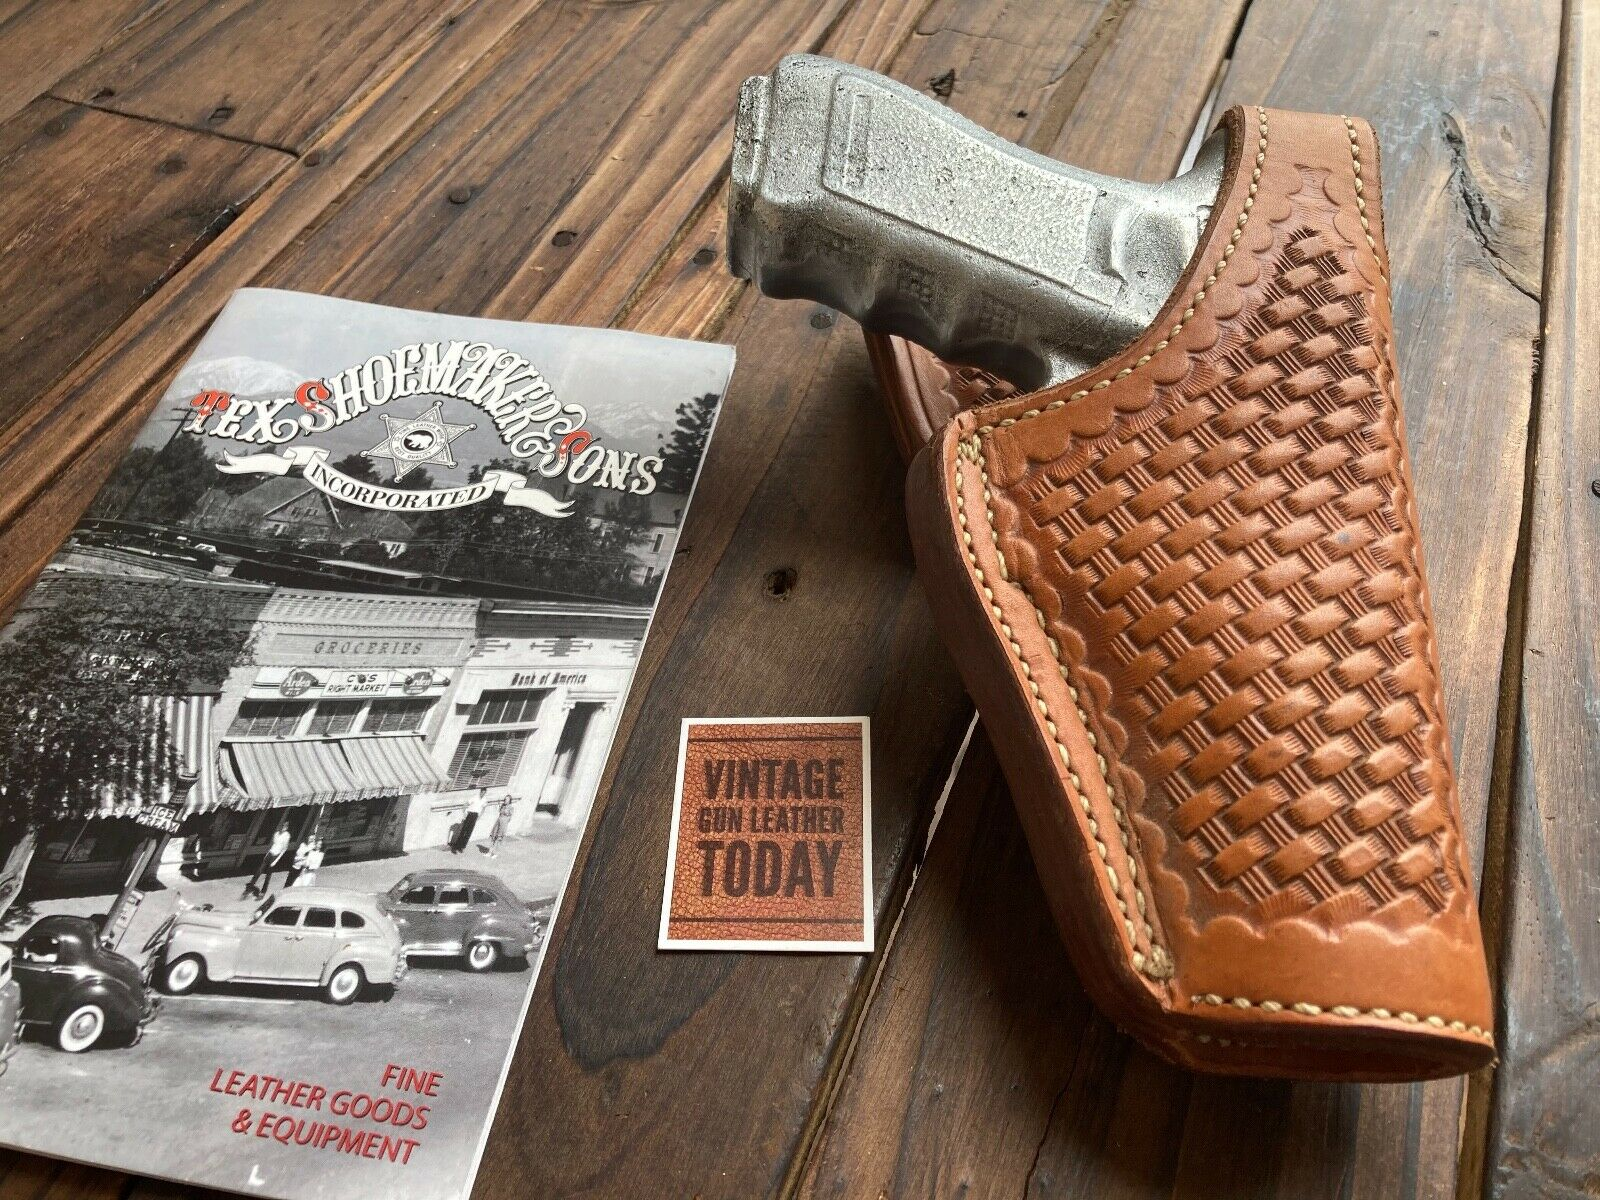 Details about  /Tex Shoemaker Brown Gloss Clarino AKA Black Cherry Duty Holster for Golck 22